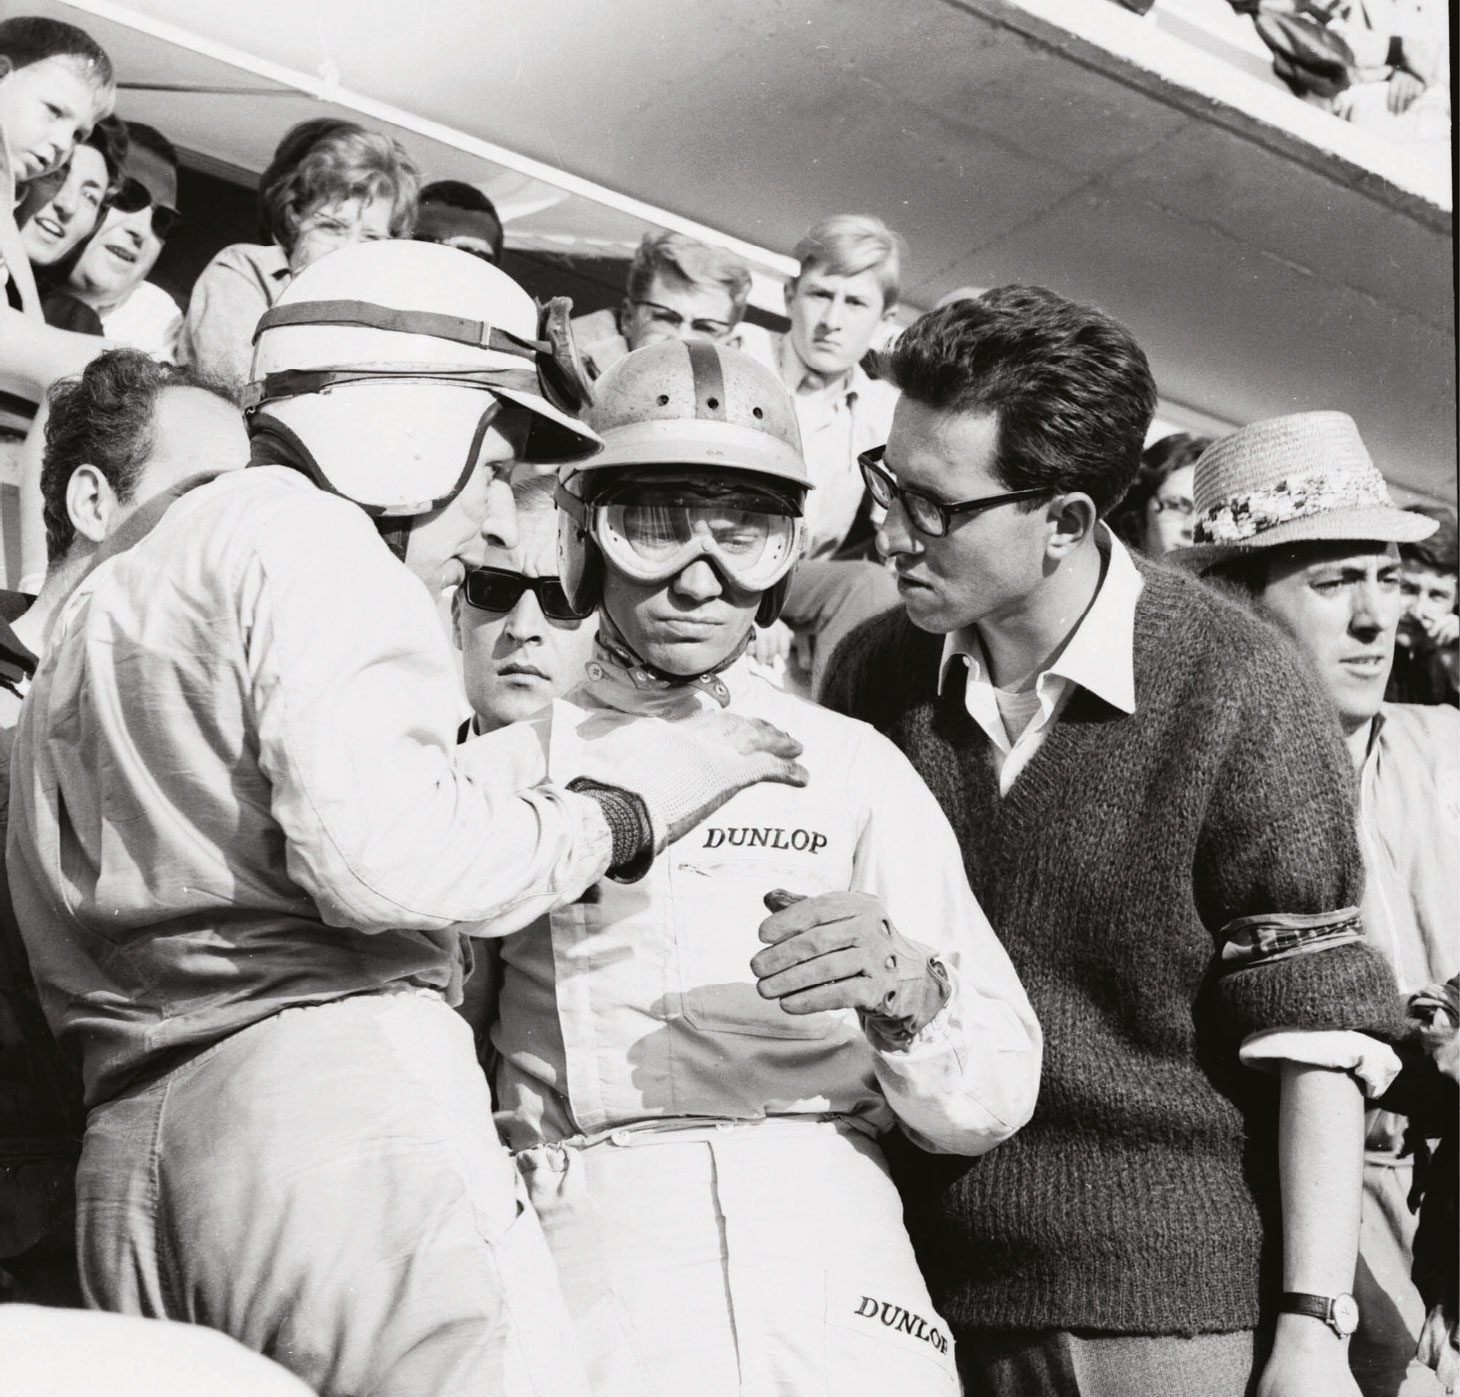 Forghieri with drivers John Surtees and Willy Mairesse at Le Mans in 1963